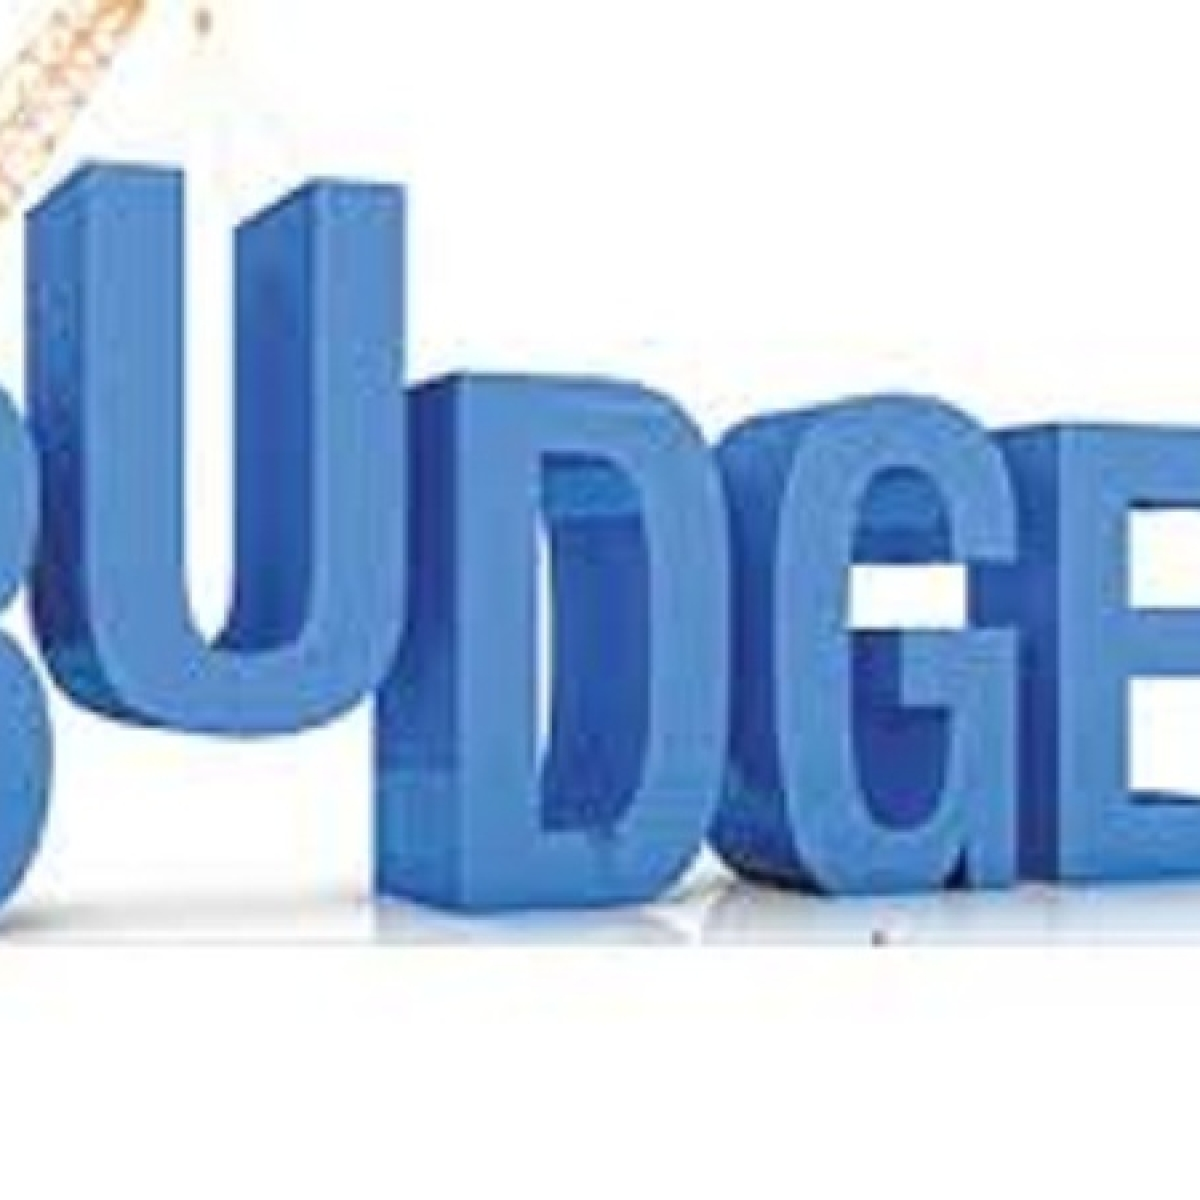 Budget 2019: Corporates may be incentivised to invest in education, skilling